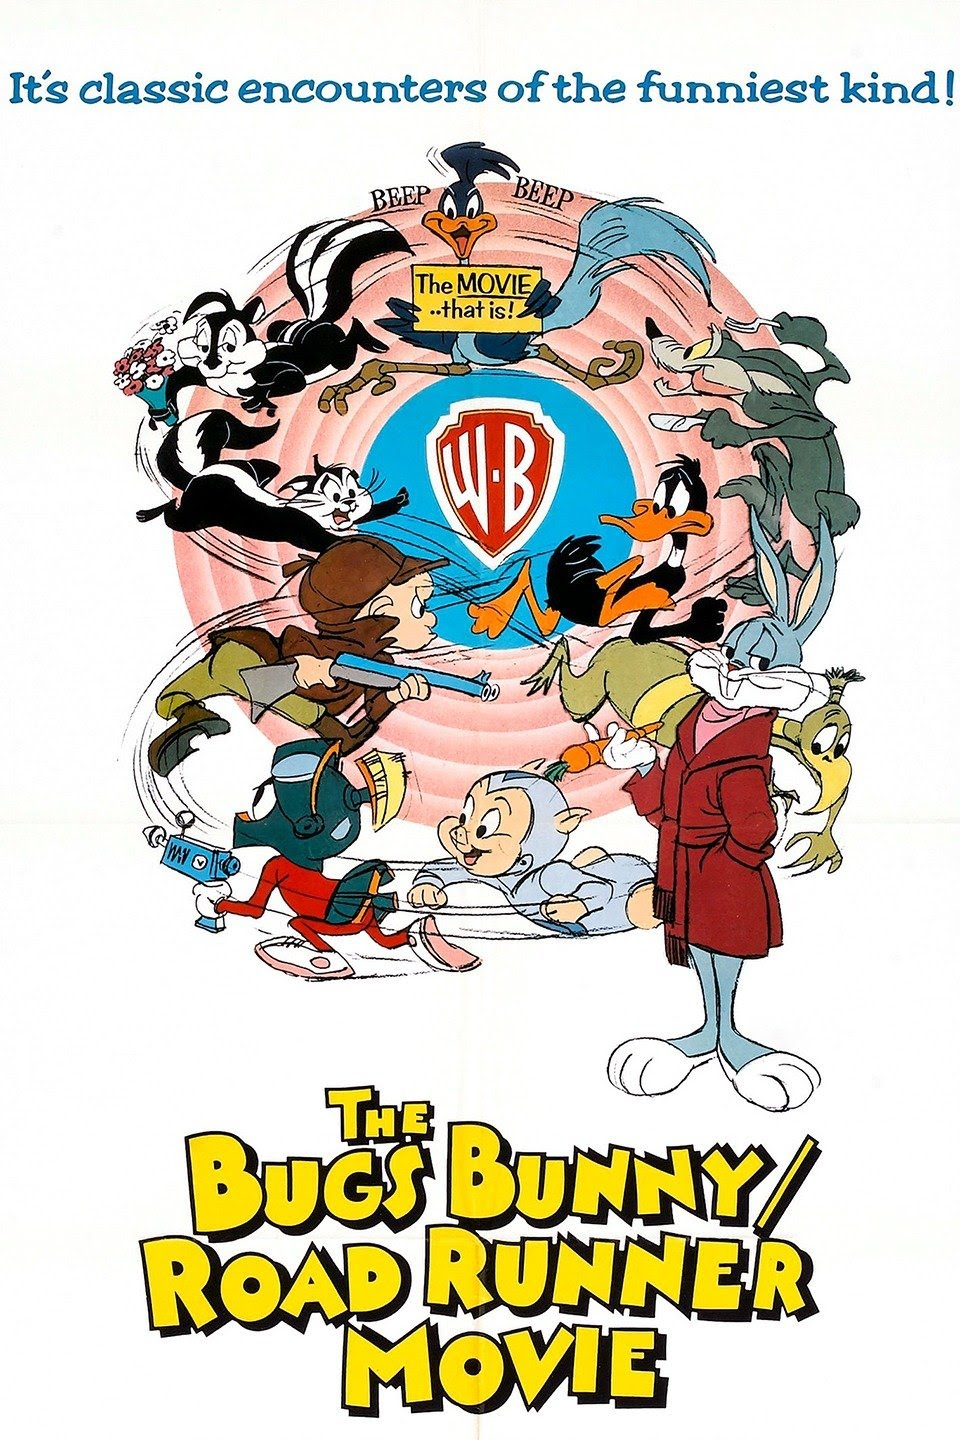 The Bugs Bunny/Road Runner Movie